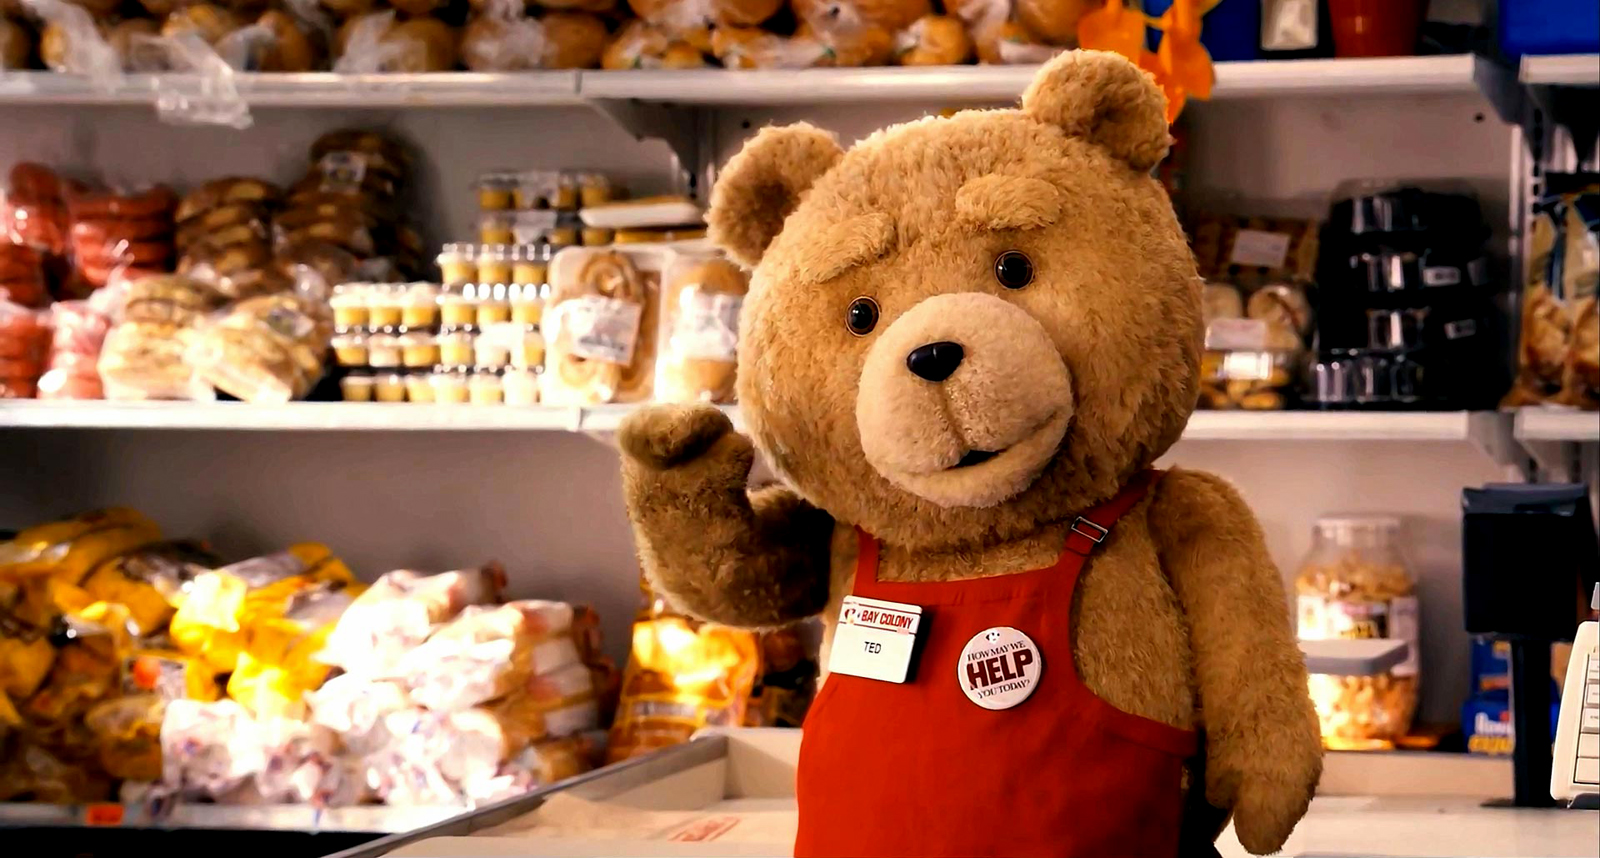 http://3.bp.blogspot.com/-4sycxYKLv64/T-wnt8uG5jI/AAAAAAAACW4/ZmpB4tvYA-Y/s1600/Teddy_Bear_Ted_Movie_HD_Wallpaper-Vvallpaper.Net.jpg